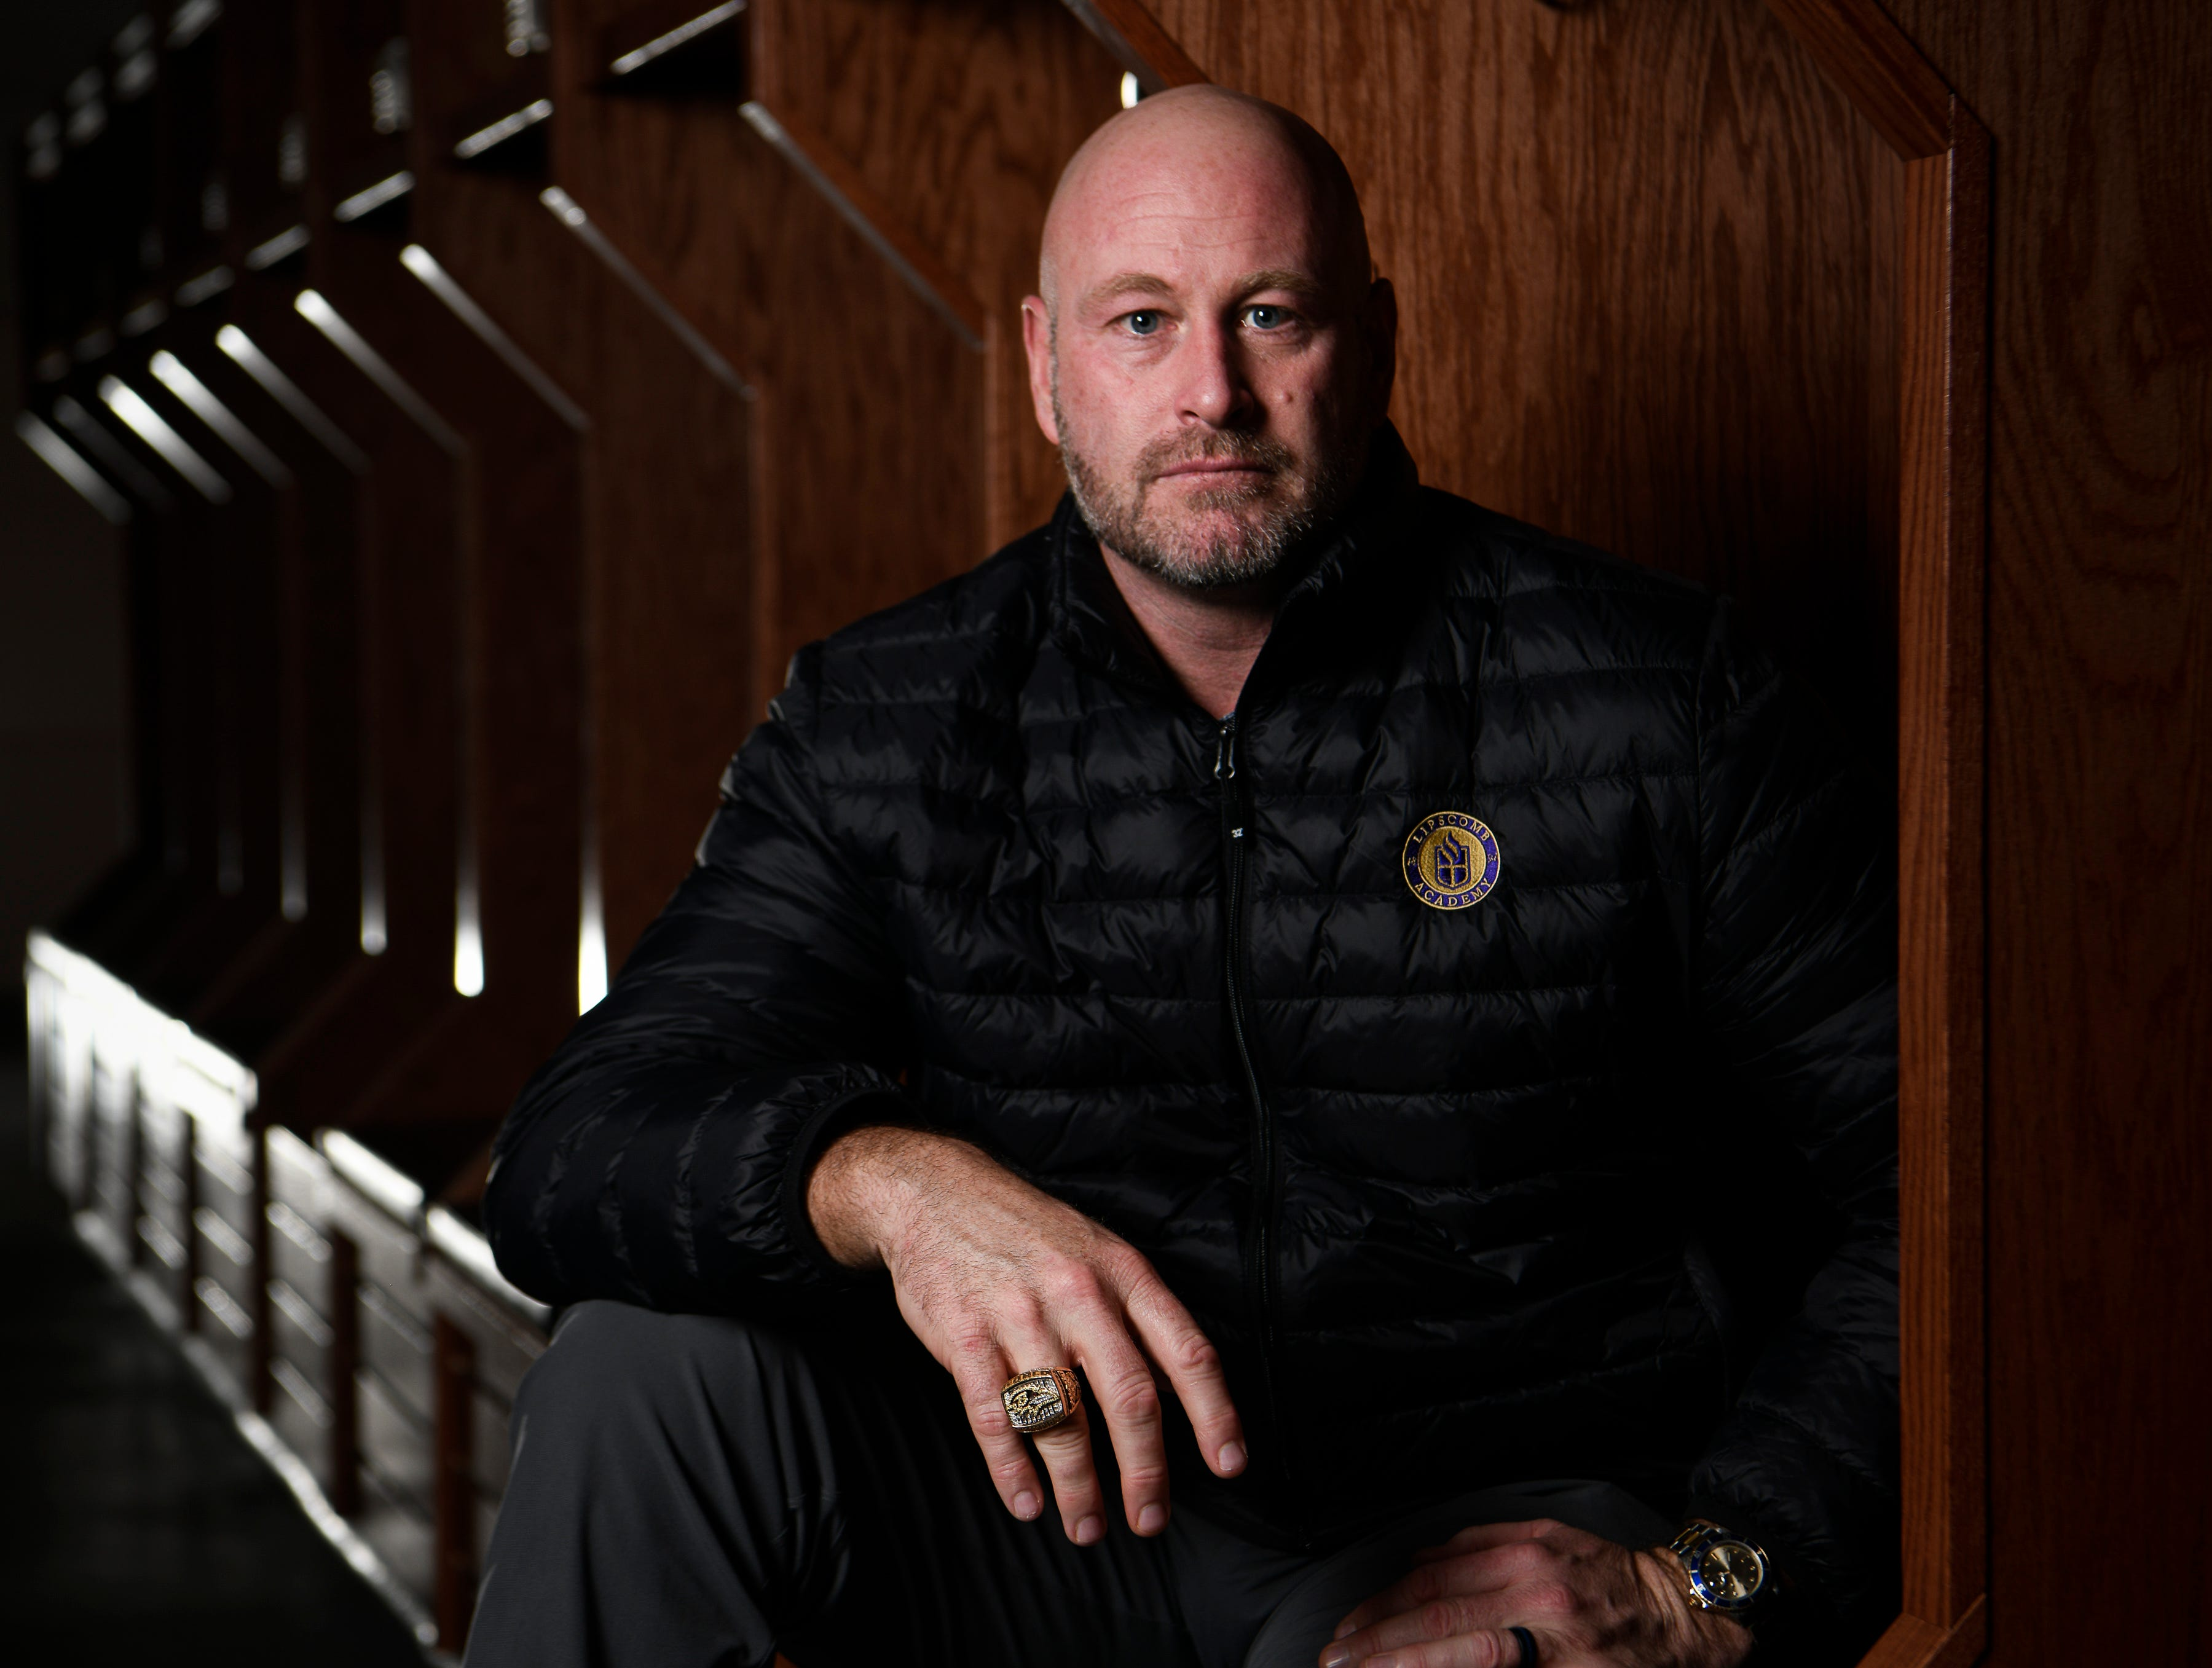 Former NFL quarterback and TV football analyst Trent Dilfer will be the new football coach at Lipscomb Academy. photographed Thursday Feb. 7, 2019 in Nashville, Tenn.